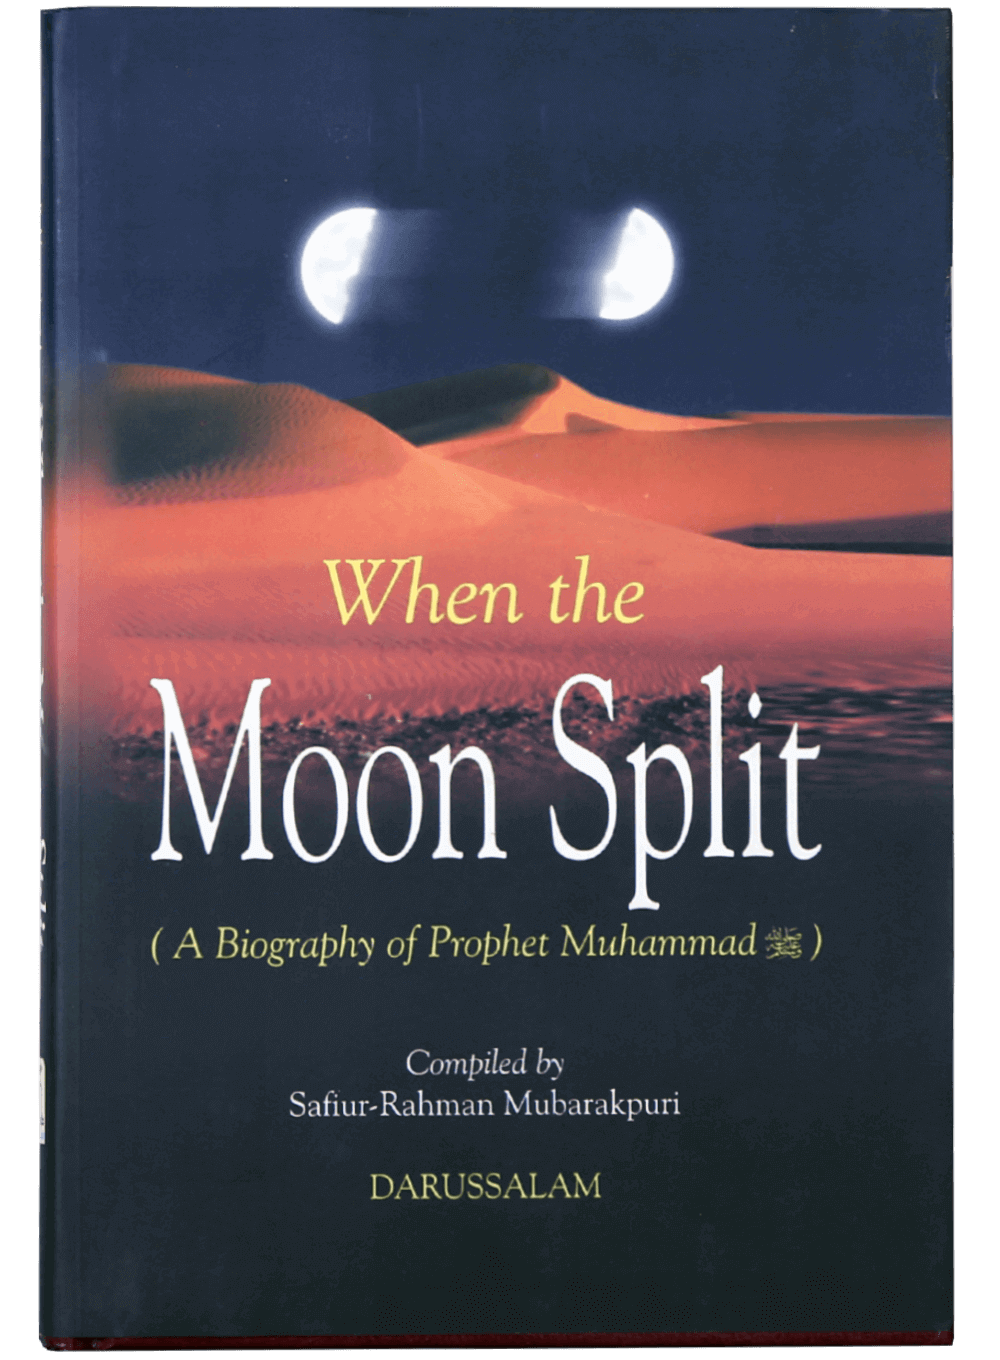 Image result for When the moon split